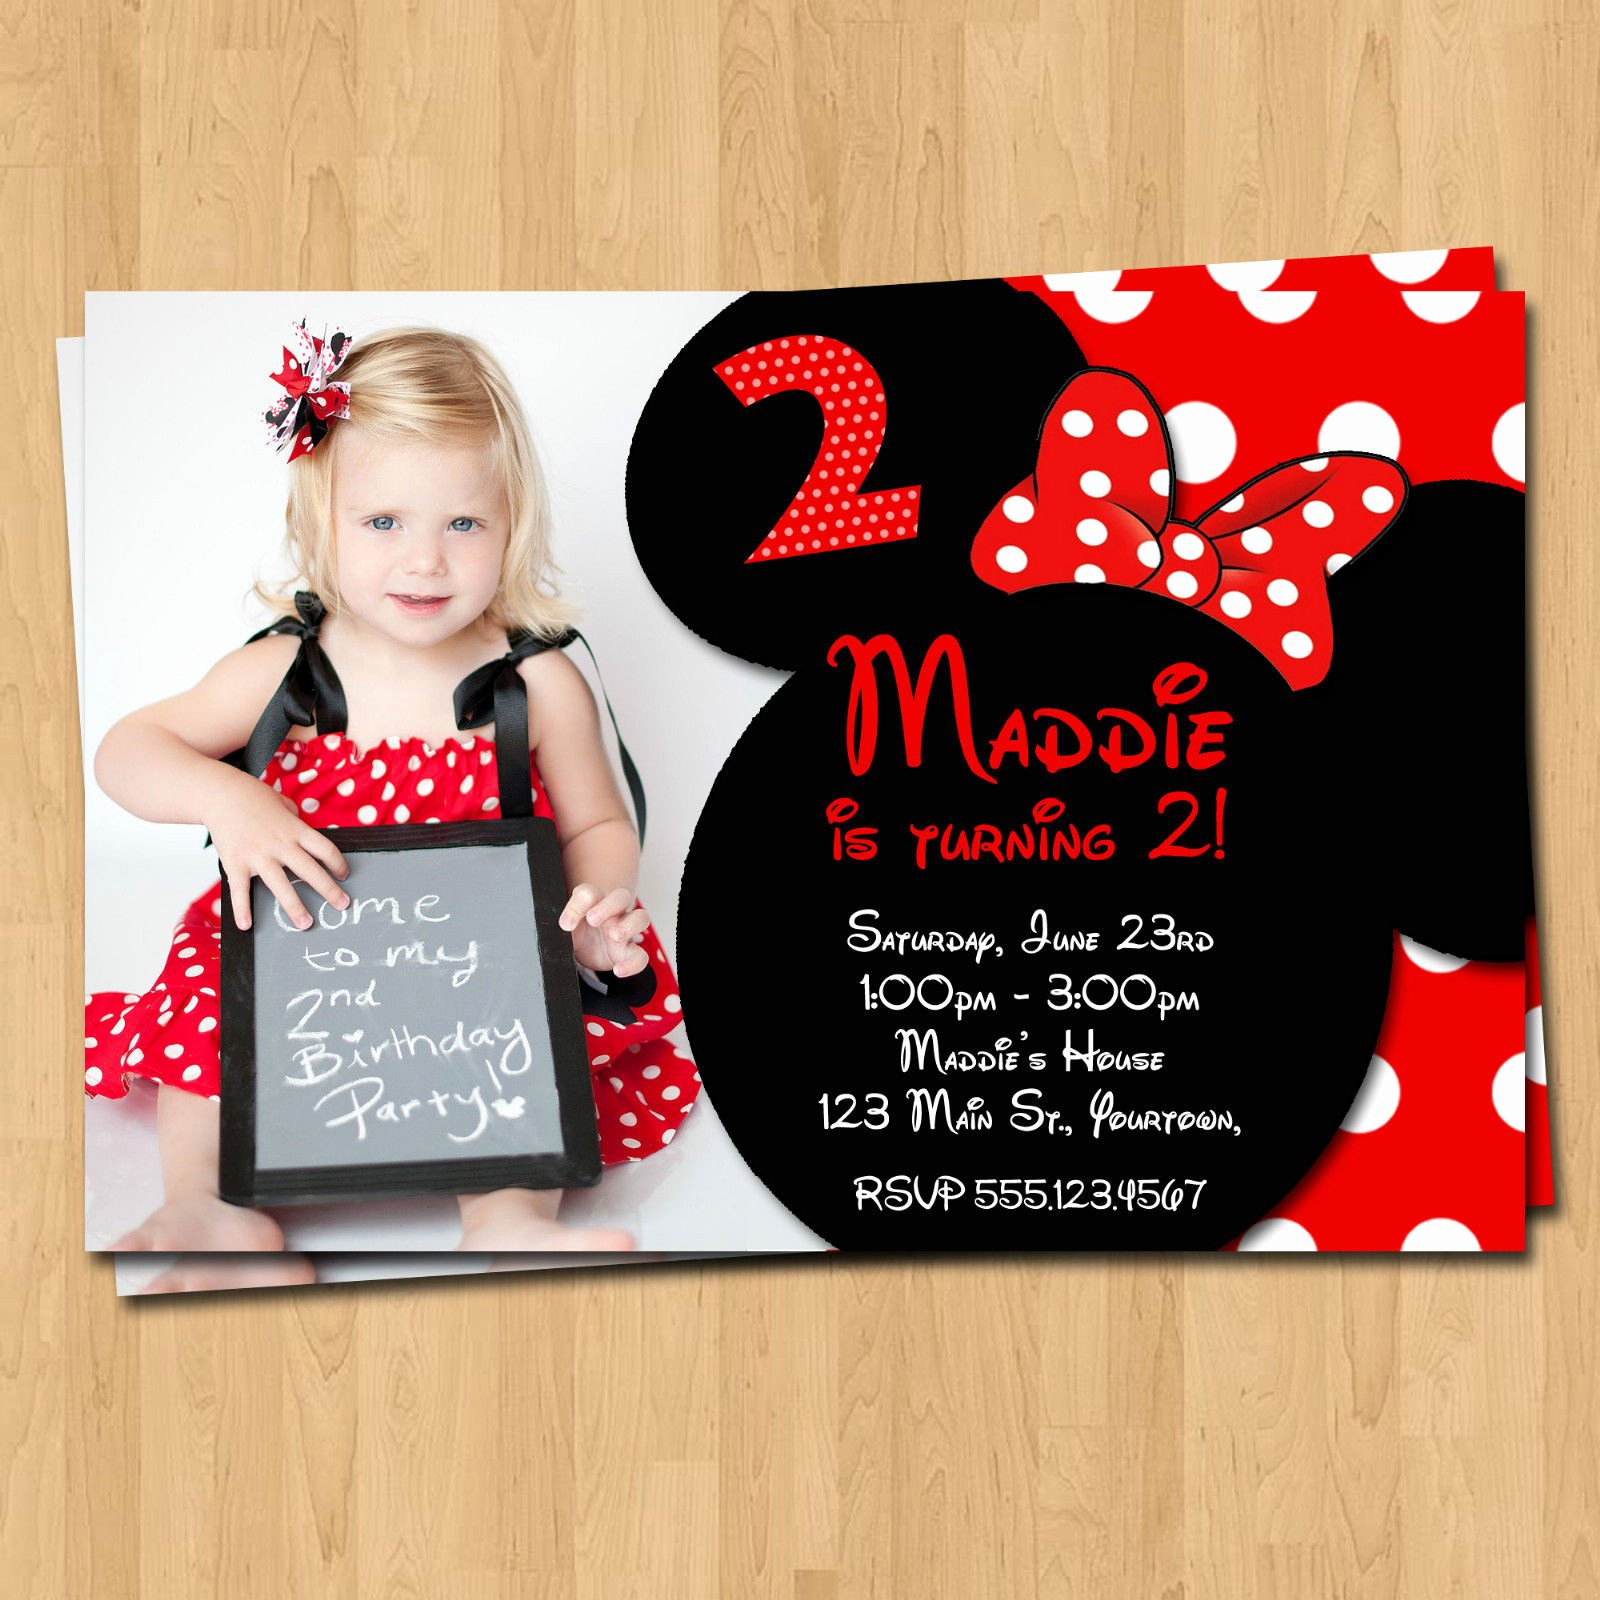 Minnie Mouse Invitations Free Awesome Free Printable Minnie Mouse Birthday Party Invitations